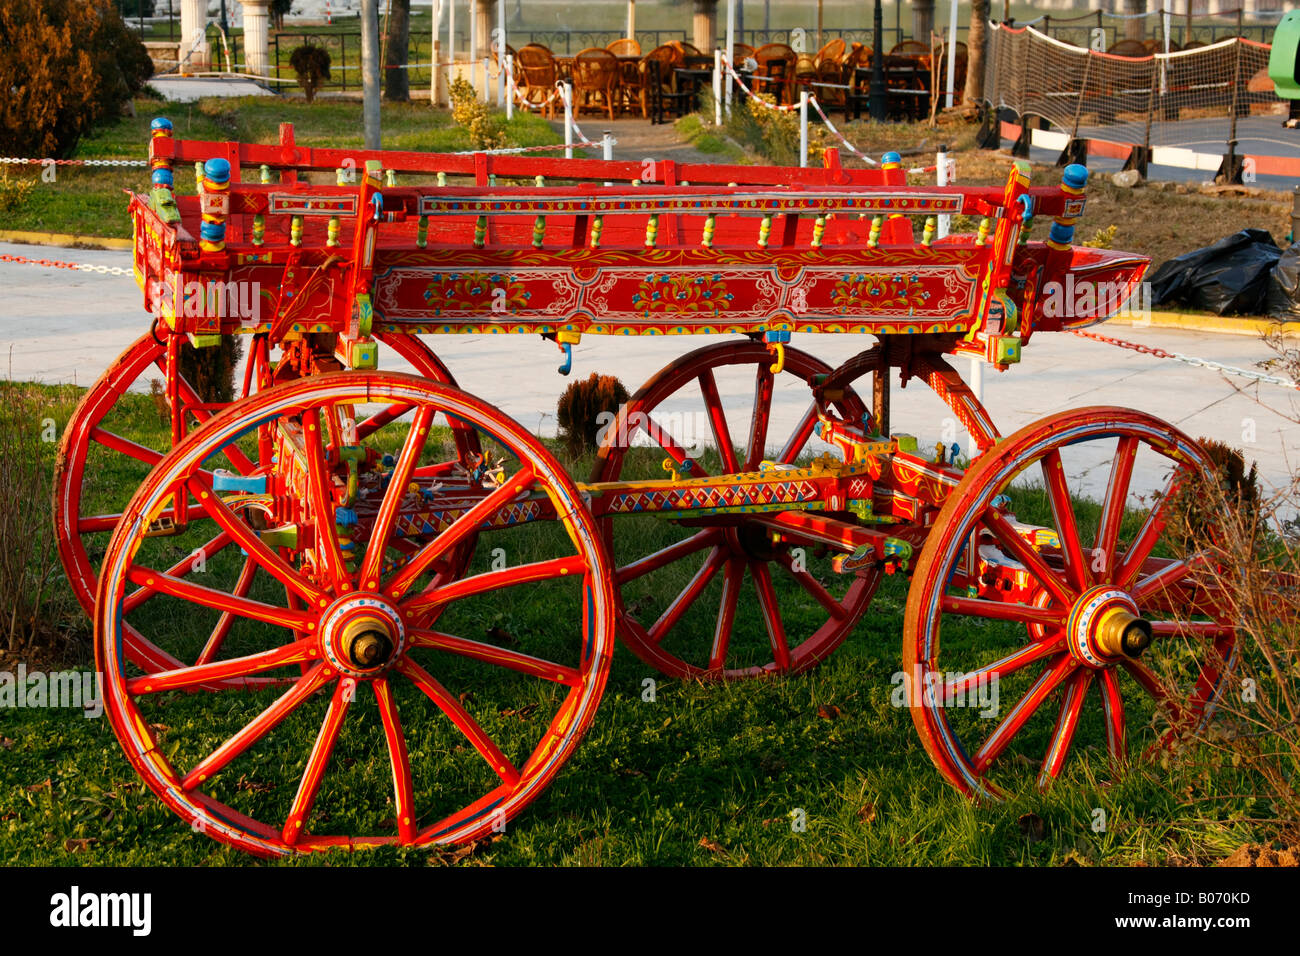 Traditional horse pulling car carriage cart in for Car carriage